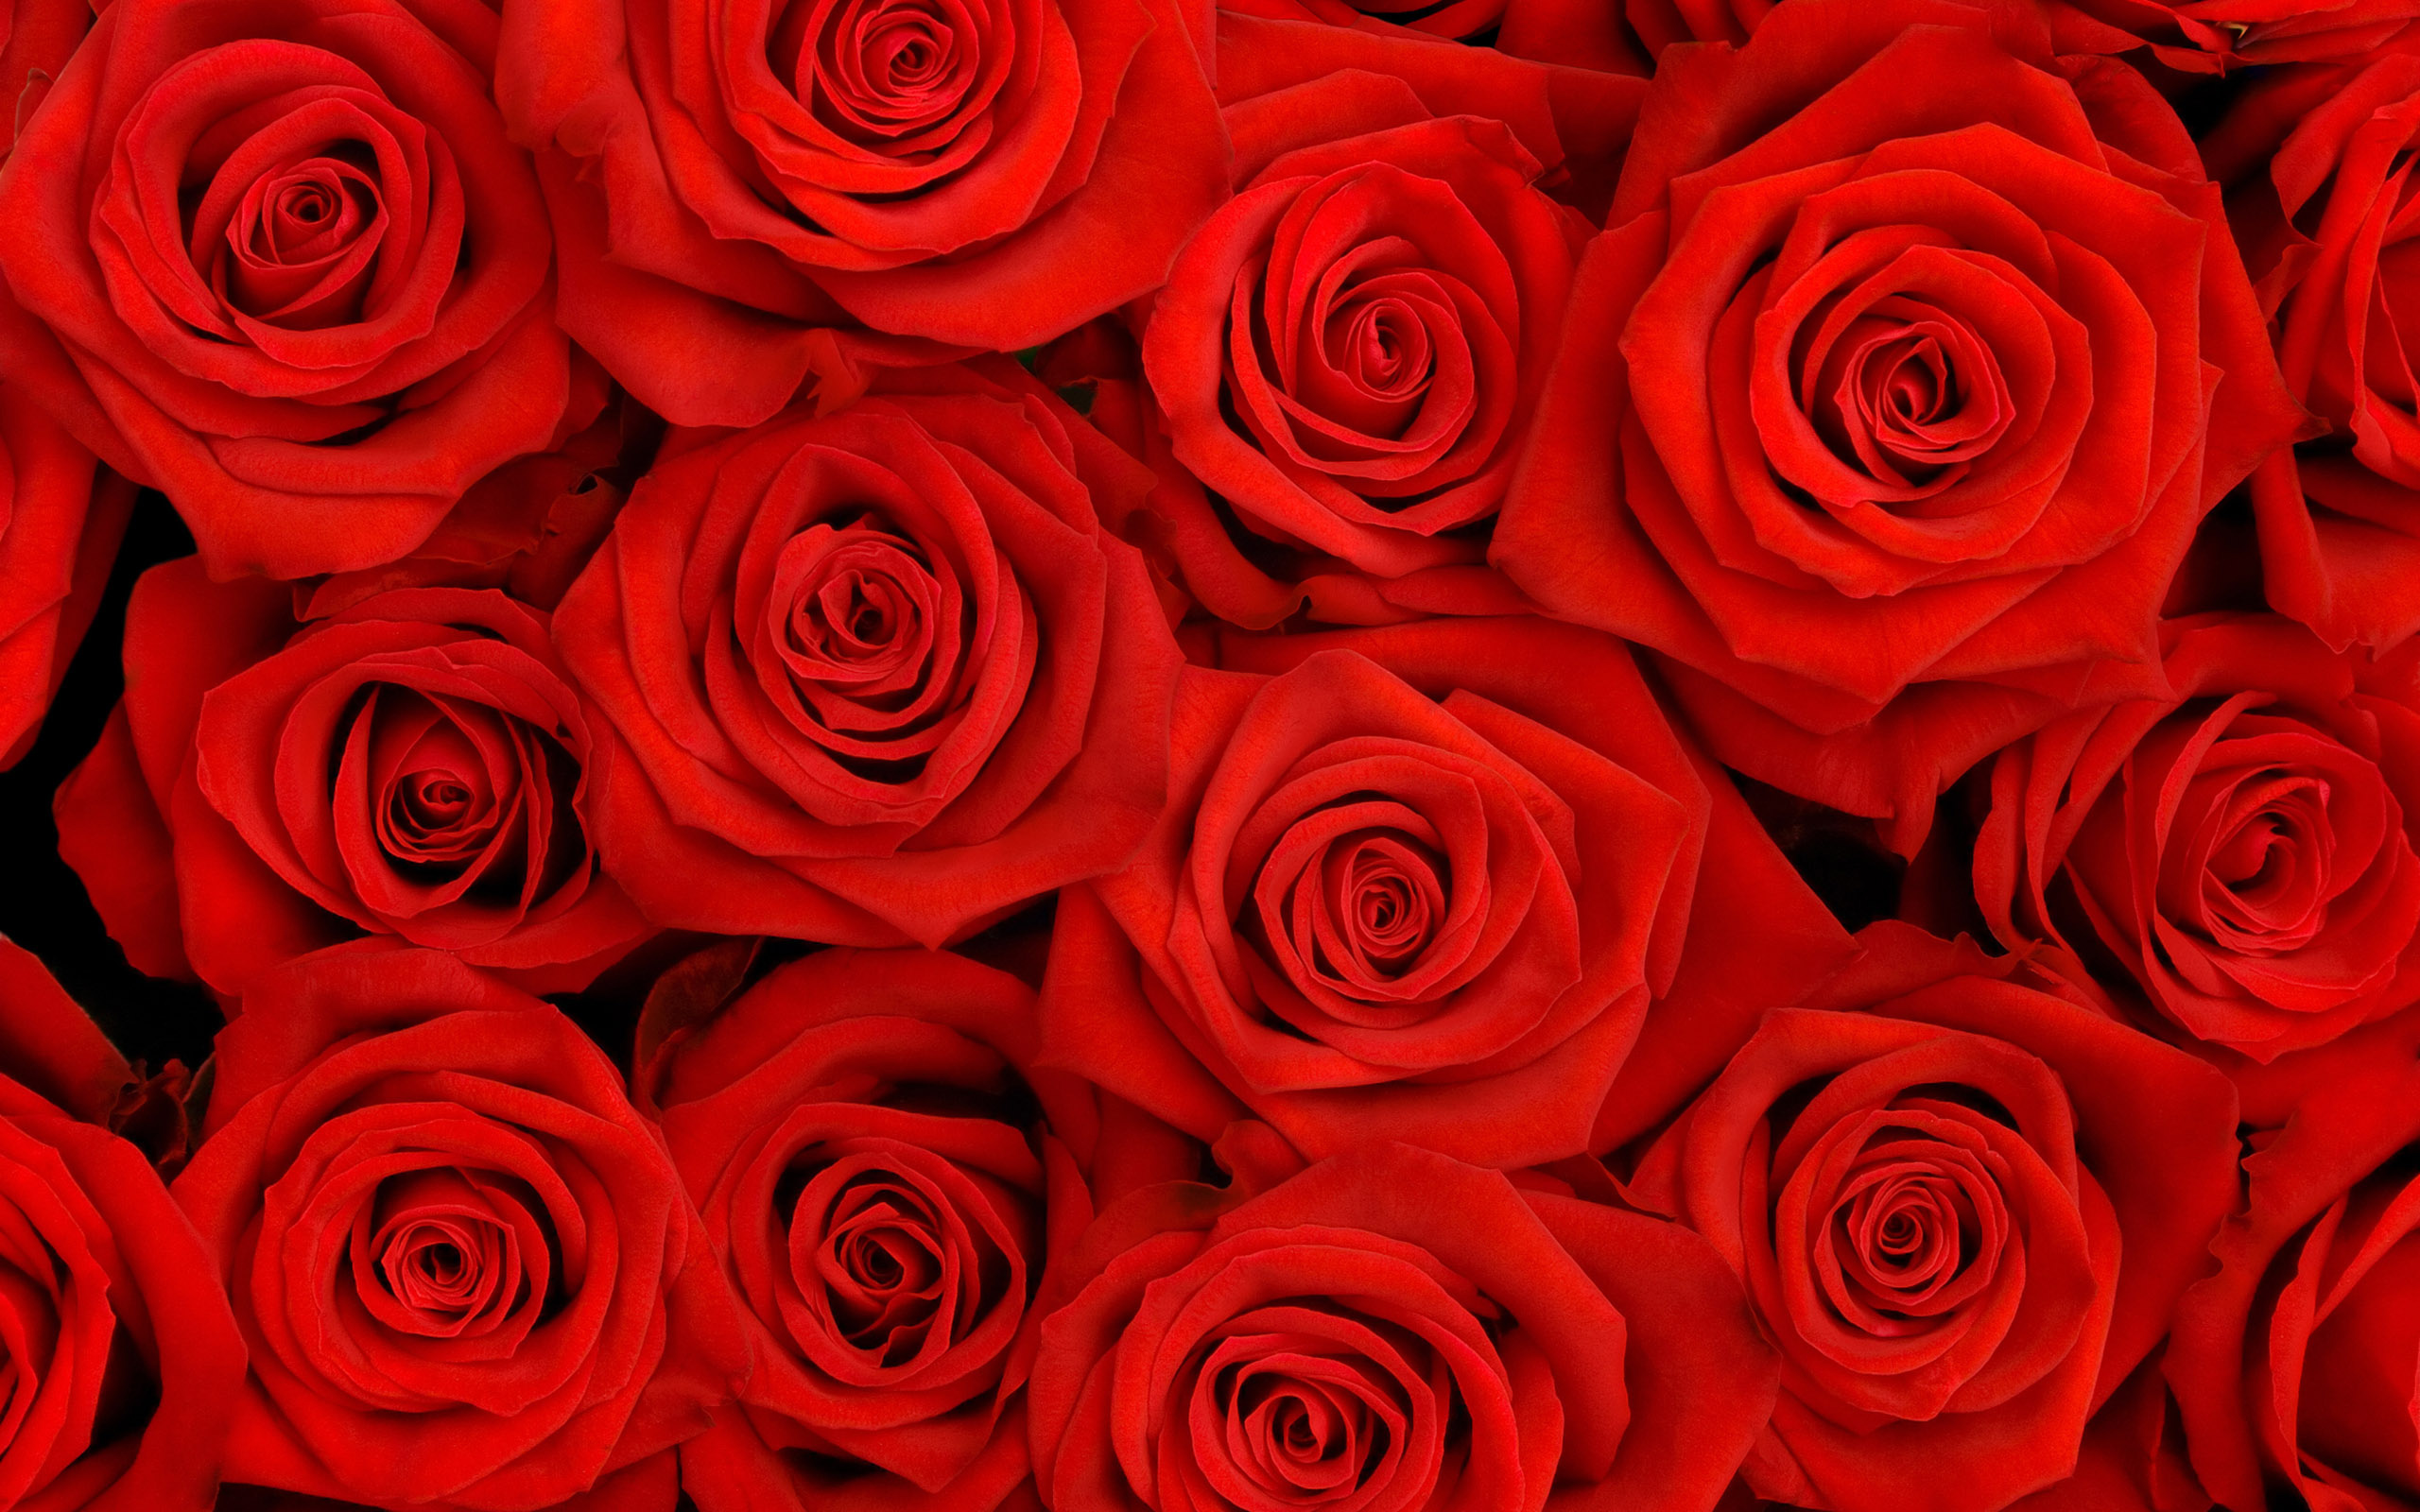 Red Roses Wallpaper Backgrounds - WallpaperSafari